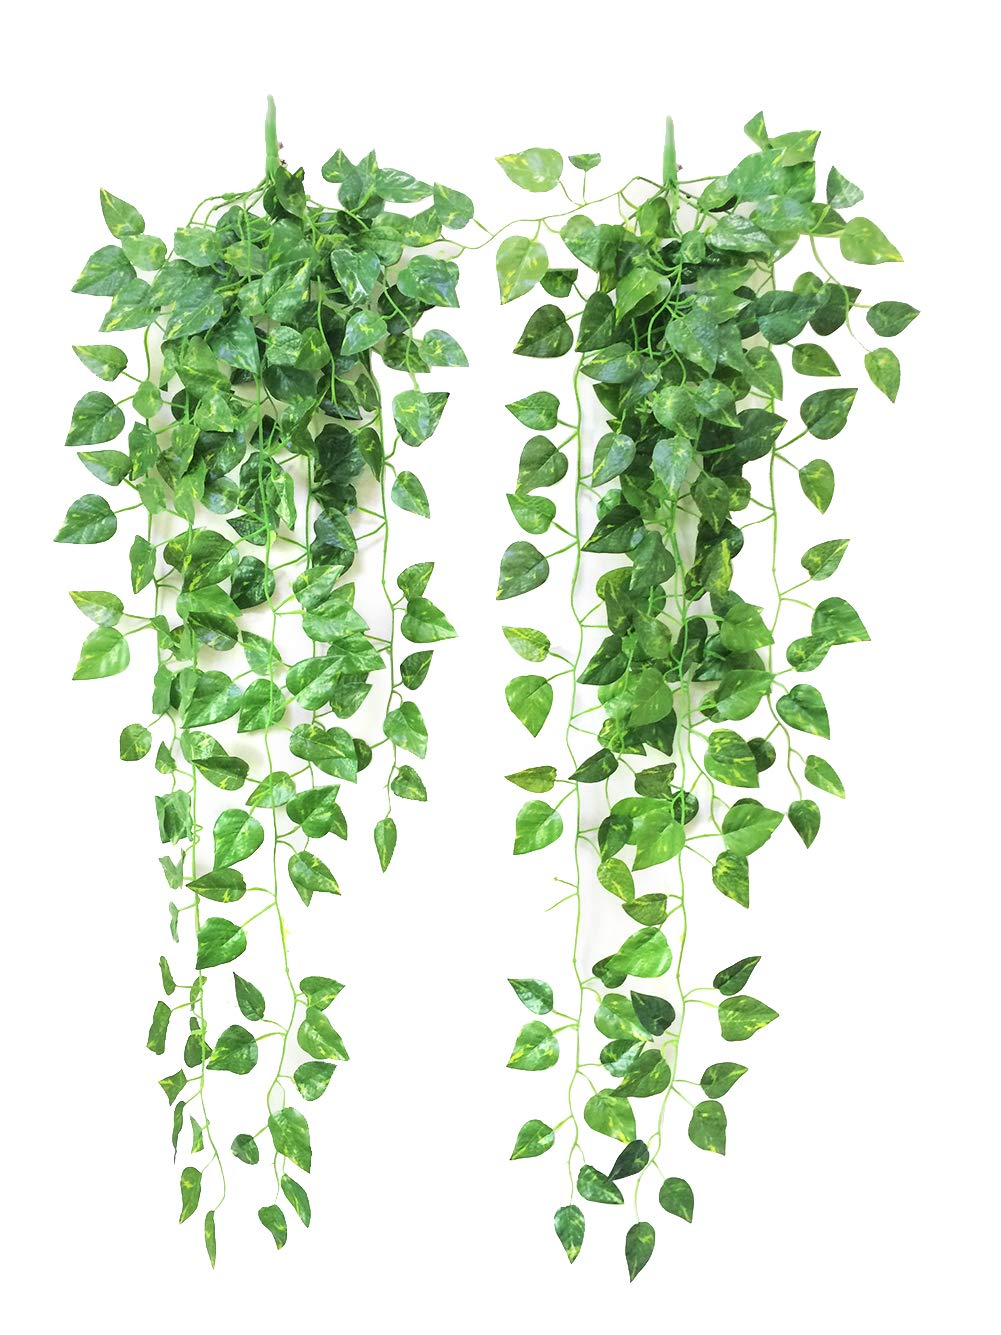 silk flower arrangements yatim 90 cm money ivy vine artificial plants greeny chain wall hanging leaves for home room garden wedding garland outside decoration pack of 2